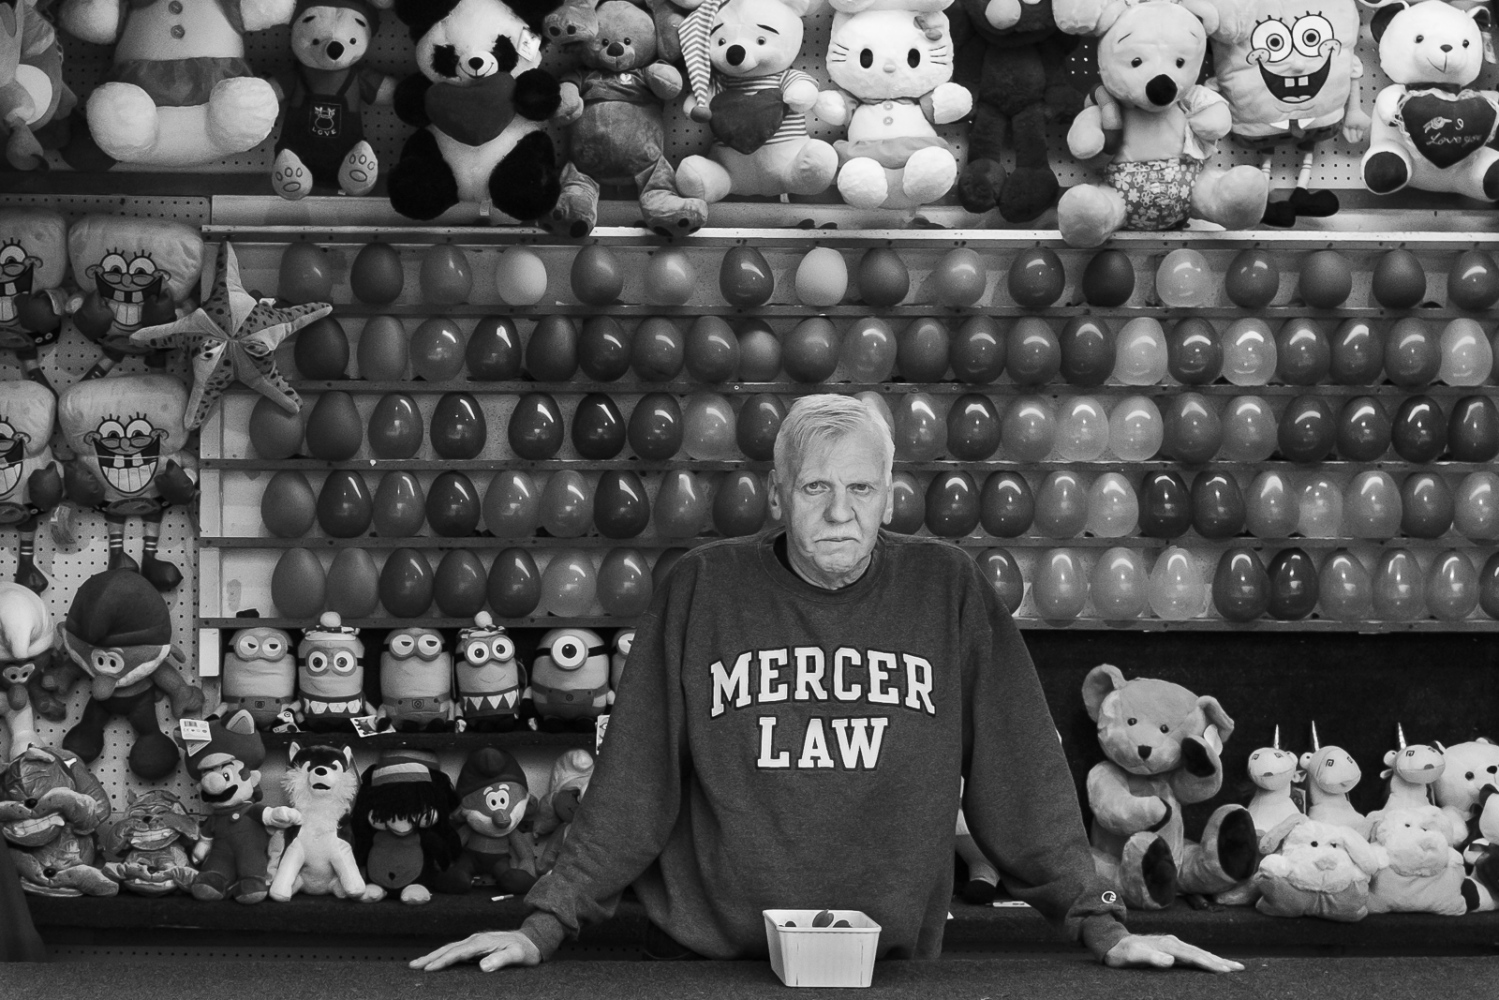 Mercer Law, Coney Island, Brooklyn, NY